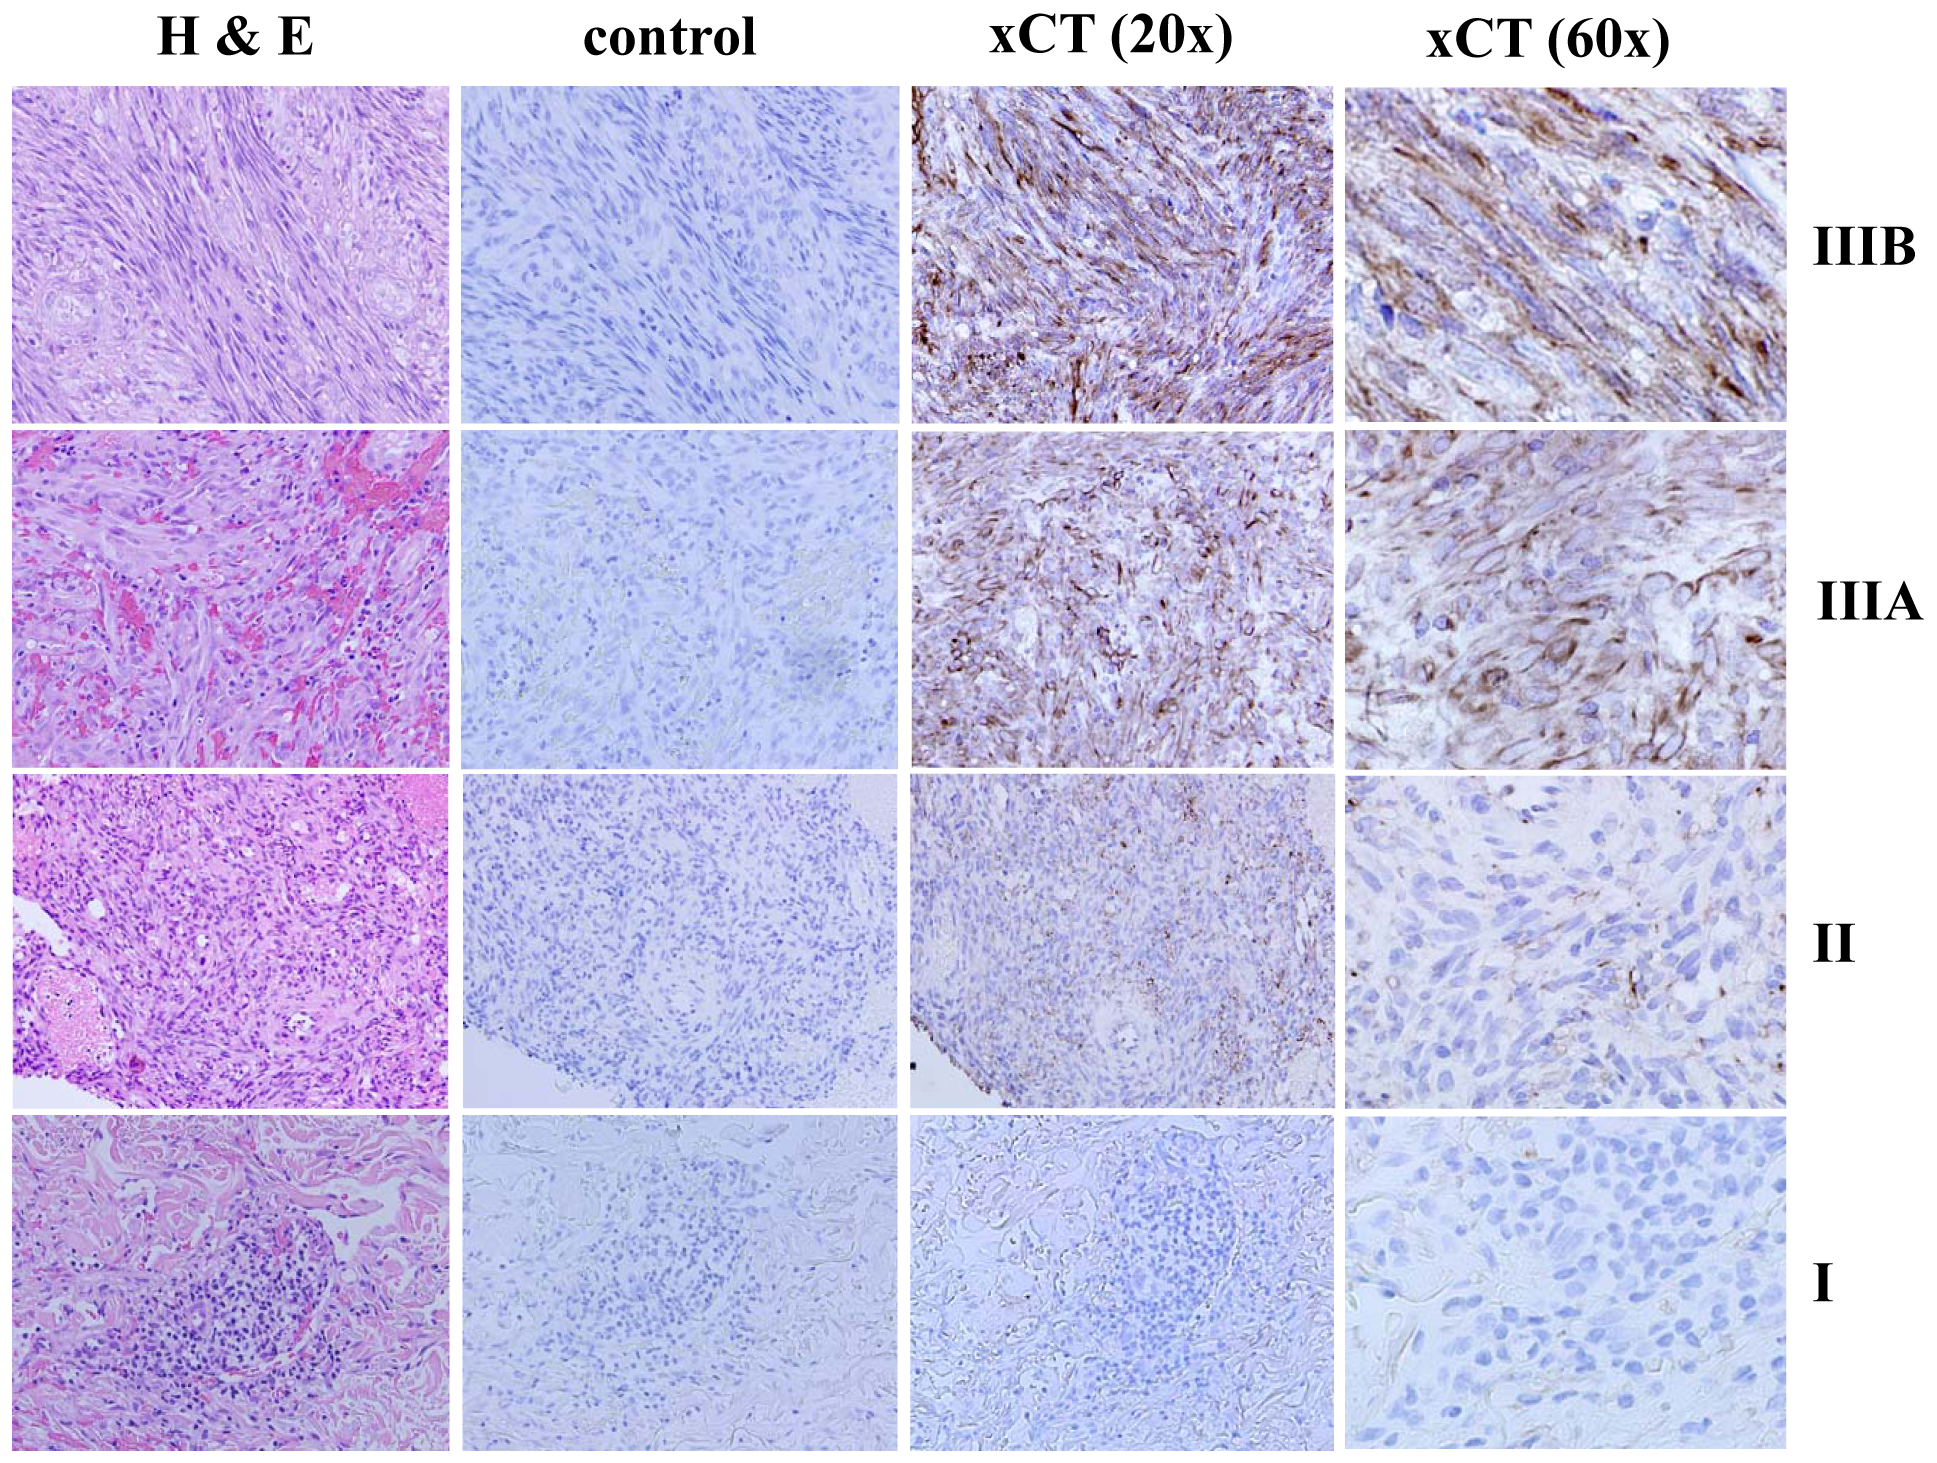 xCT expression within KS lesions correlates with tumor stage.